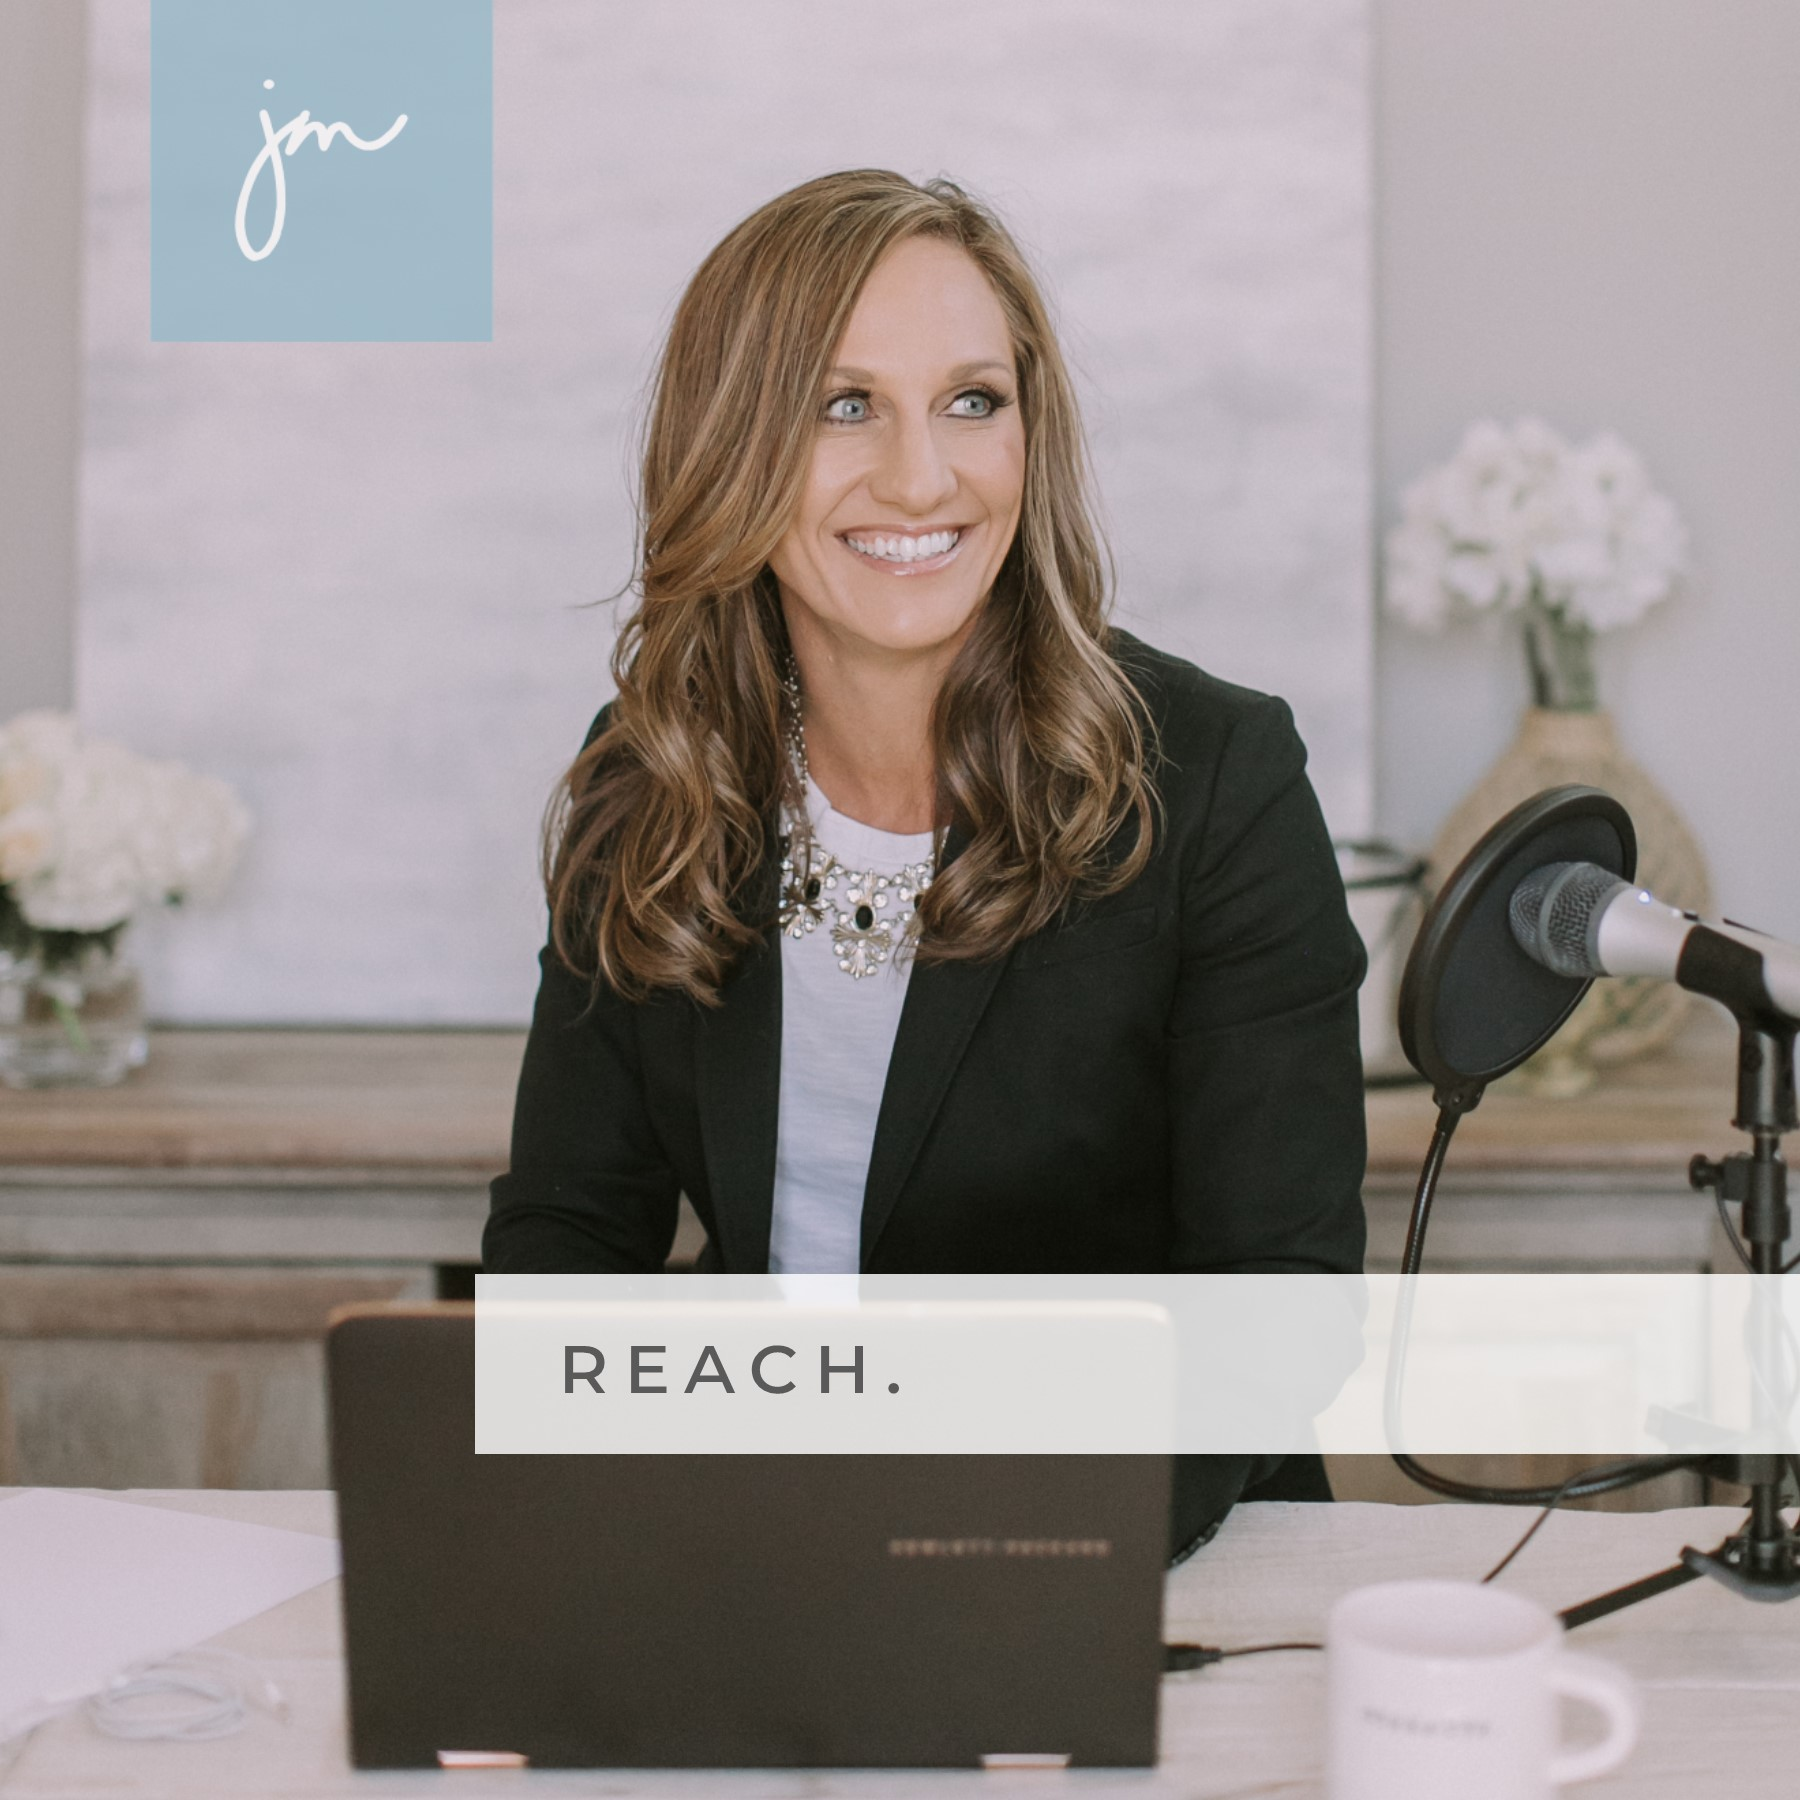 MONTHLY MEMBERSHIP - R E A C H. is an online monthly membership group designed to support and assist small business owners to build and grow their business. We focus on key one topic per month. Topics include social media, online courses, mental mind game, automating systems, marketing, and more!